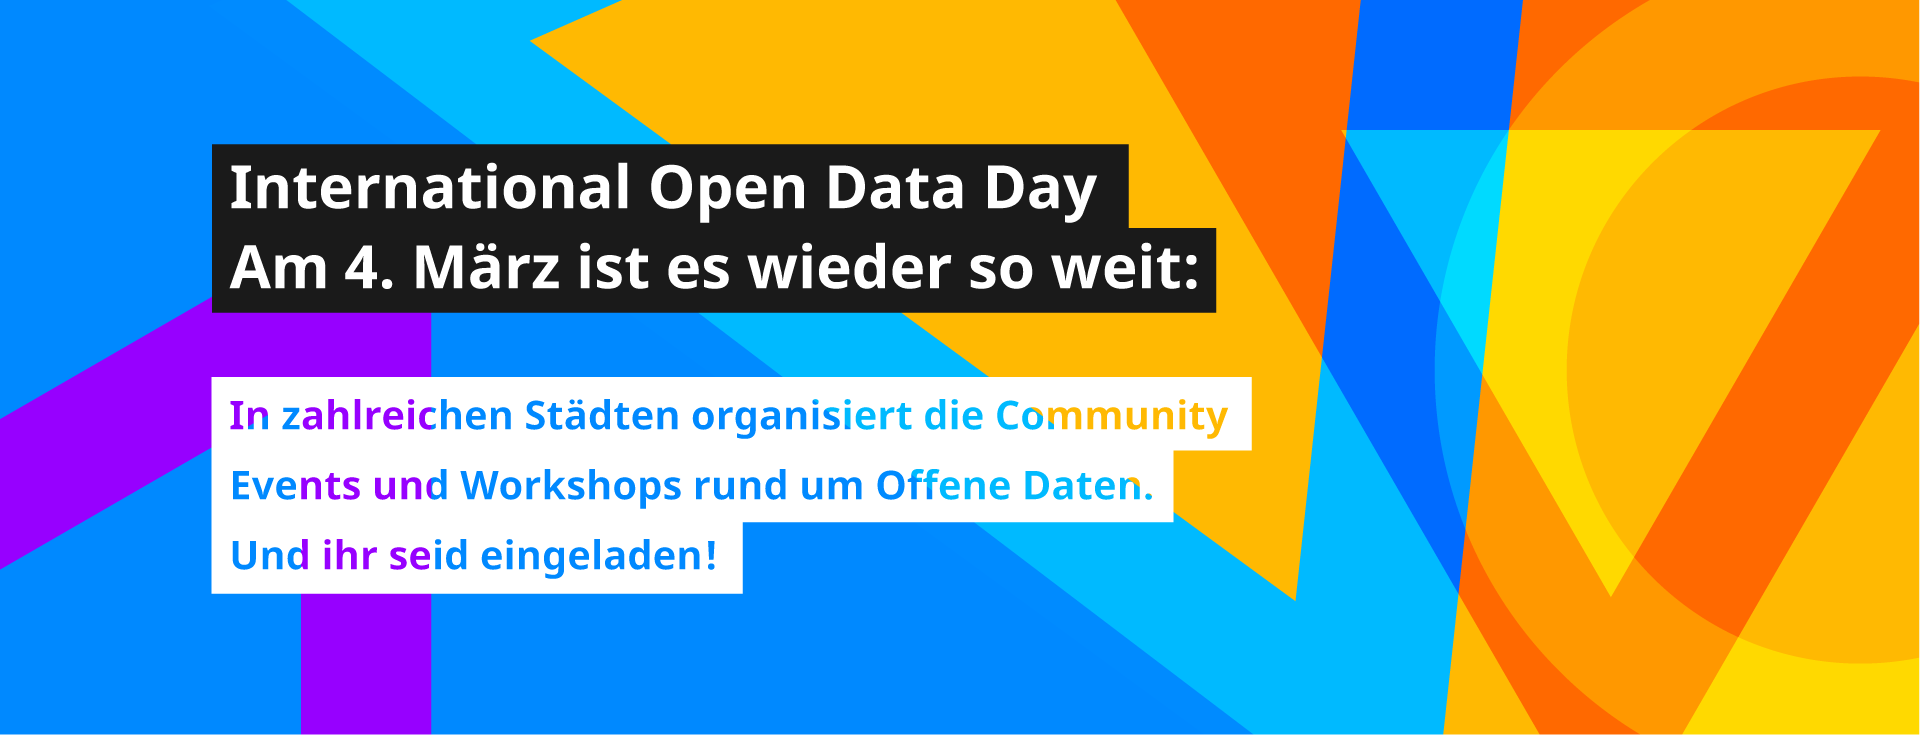 International Open Data Day am 04. März